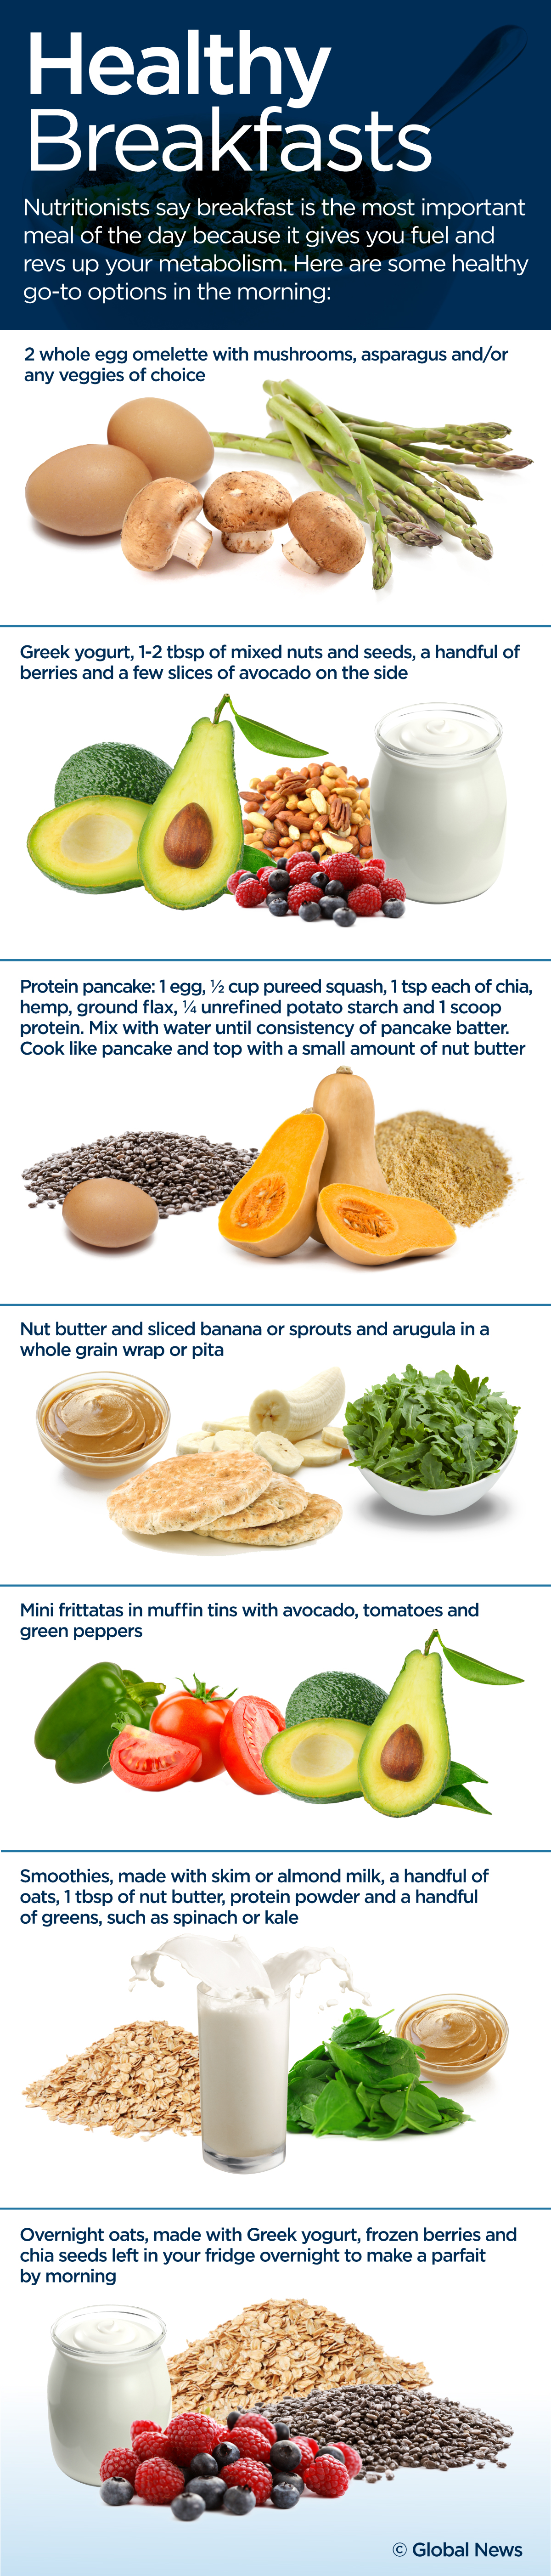 HEALTHY_BREAKFASTS_INFOGRAPHIC_1I8B_V2 (2)